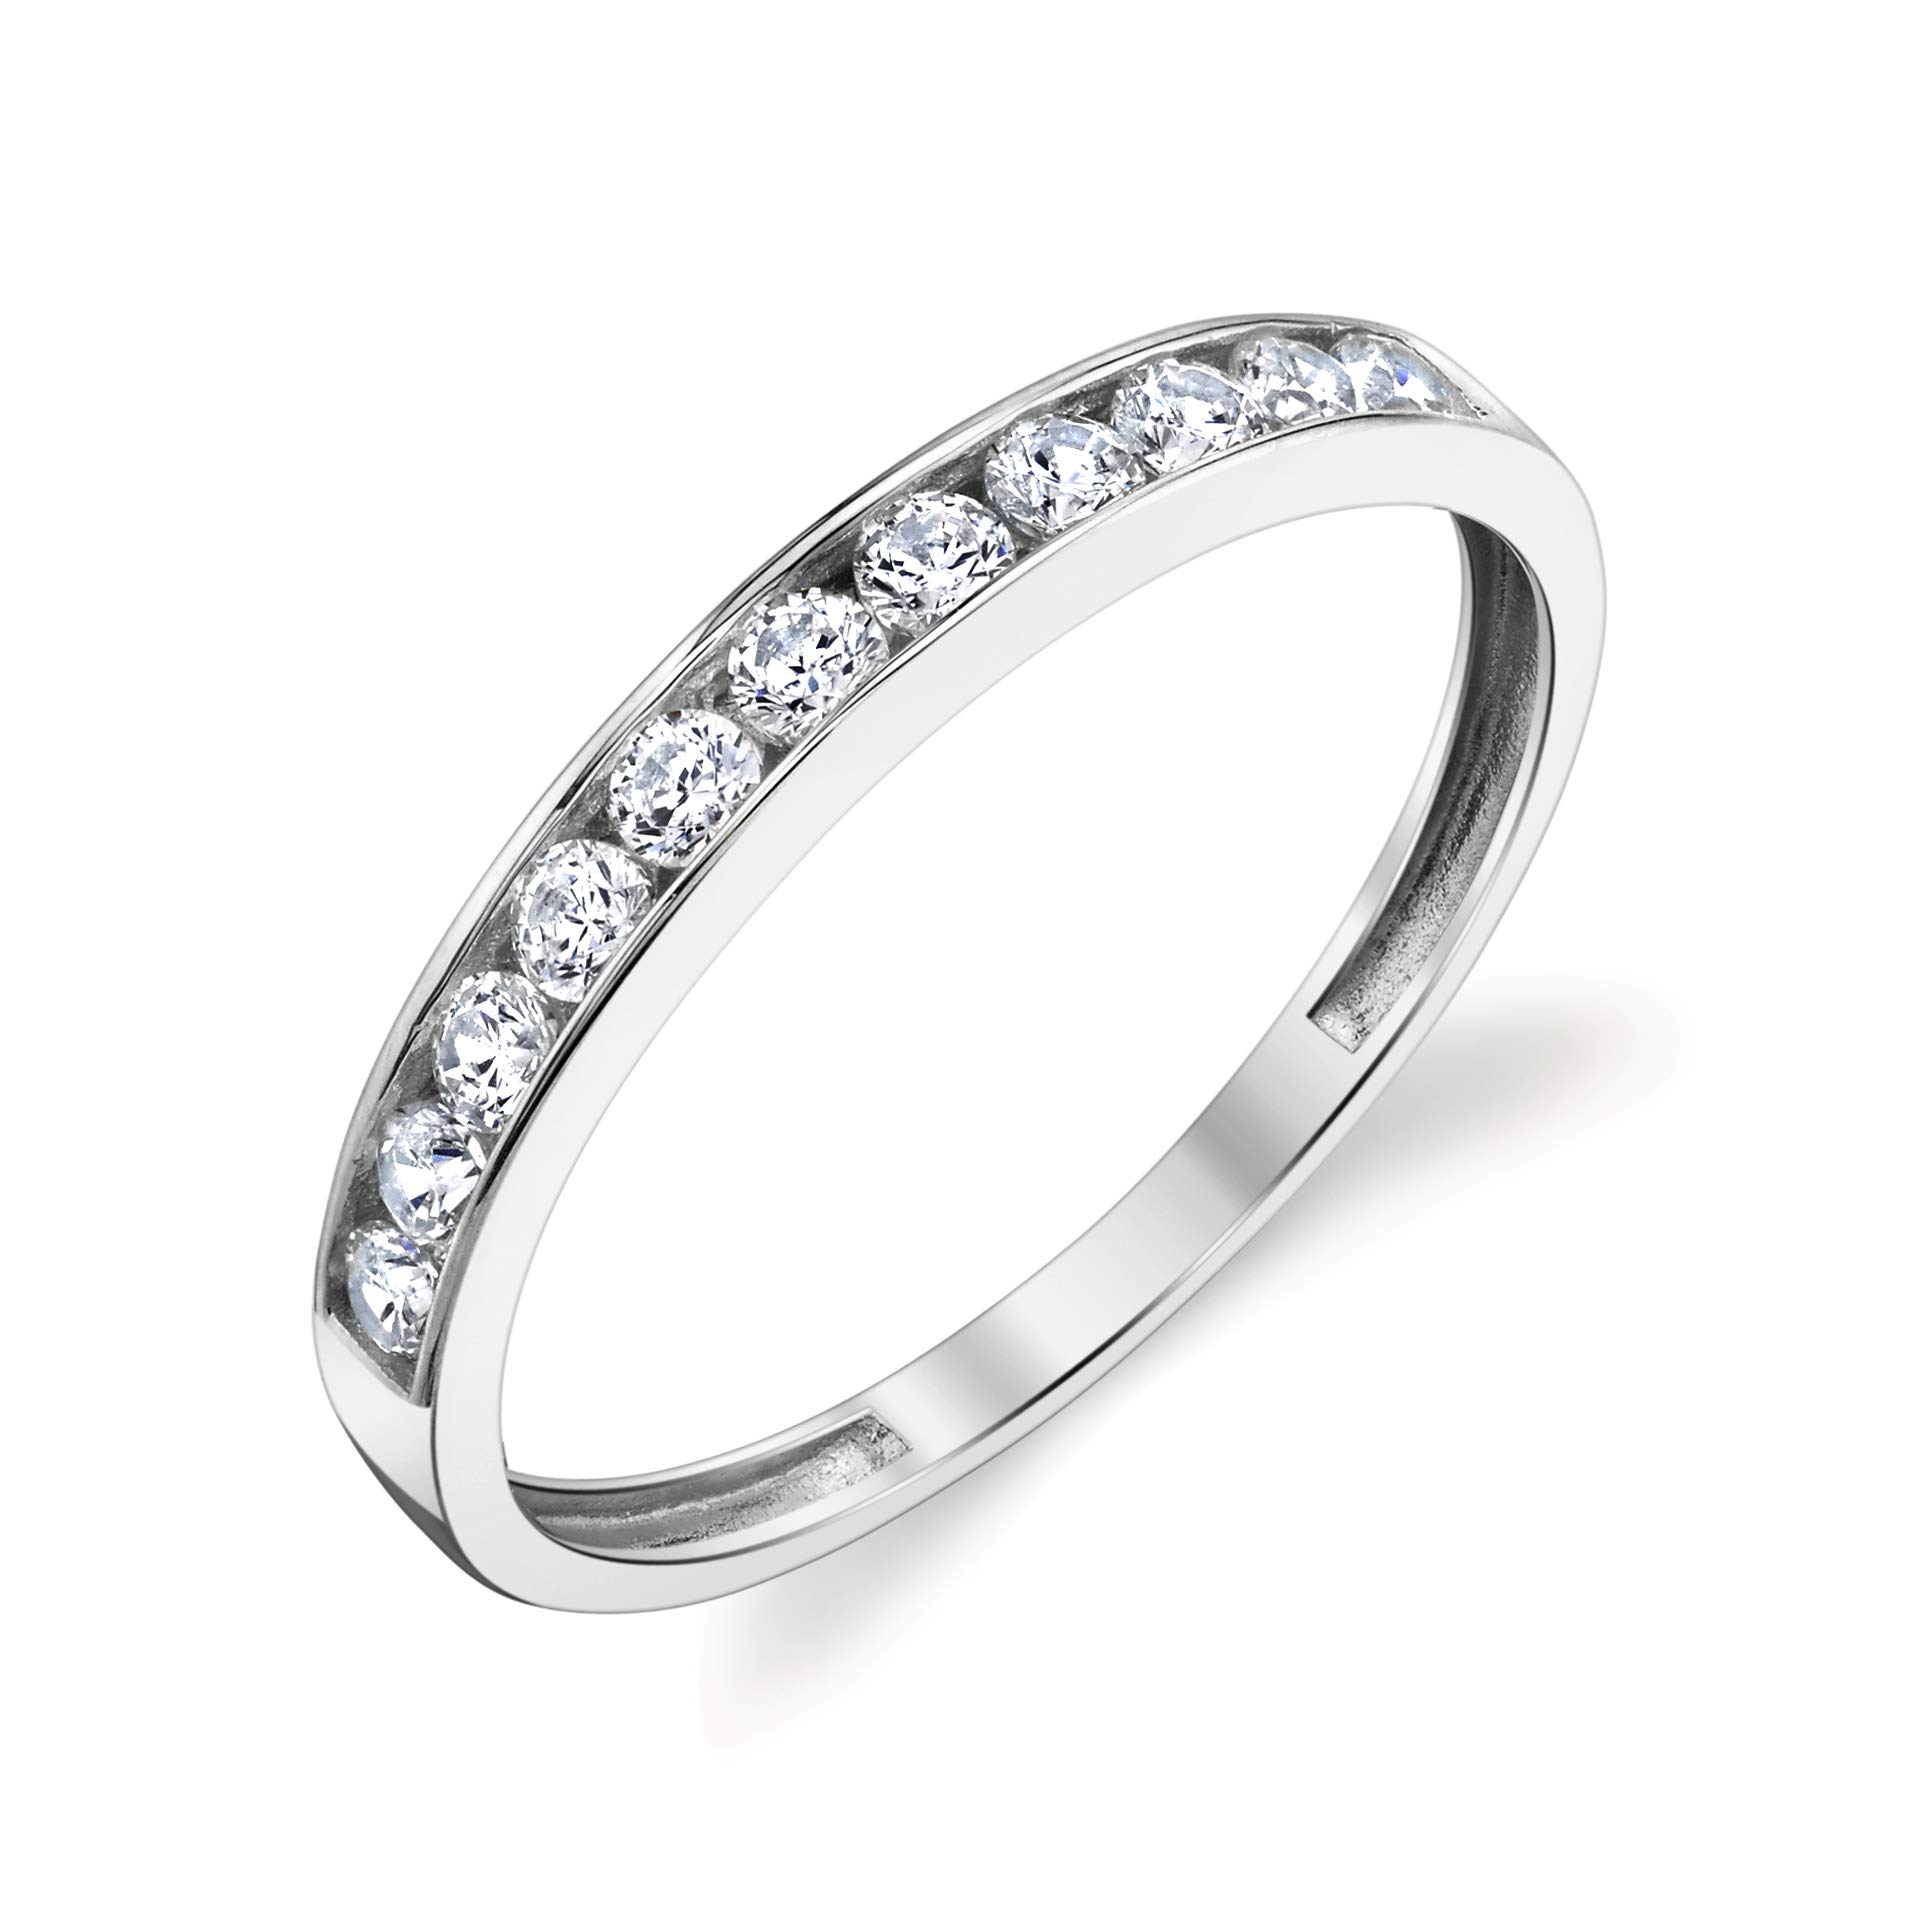 Tesori & Co 10k Solid White Gold Channel Wedding Band Ring Size 7